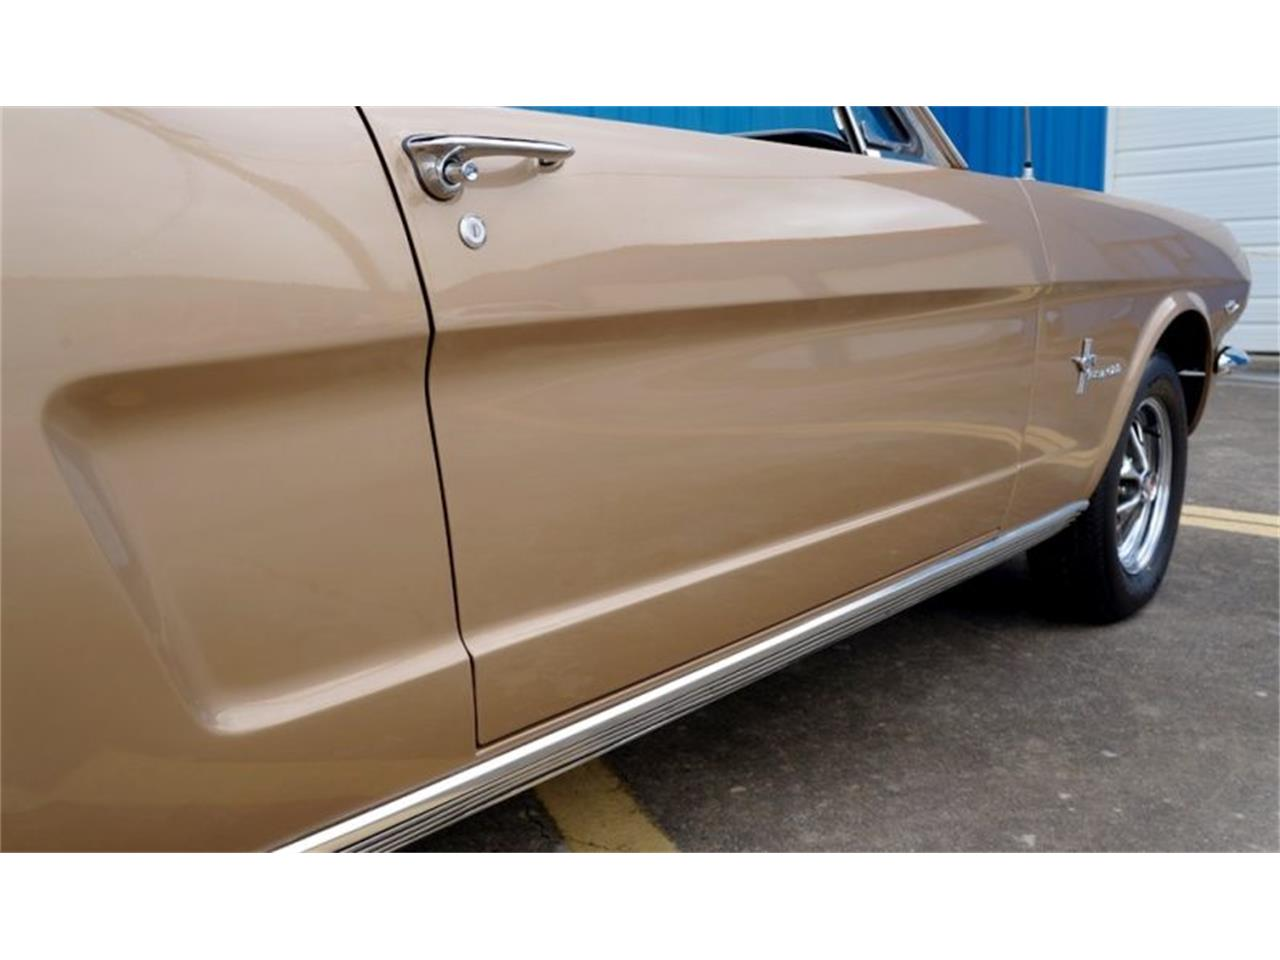 Large Picture of '65 Ford Mustang located in Indiana - $37,500.00 Offered by a Private Seller - Q6QR